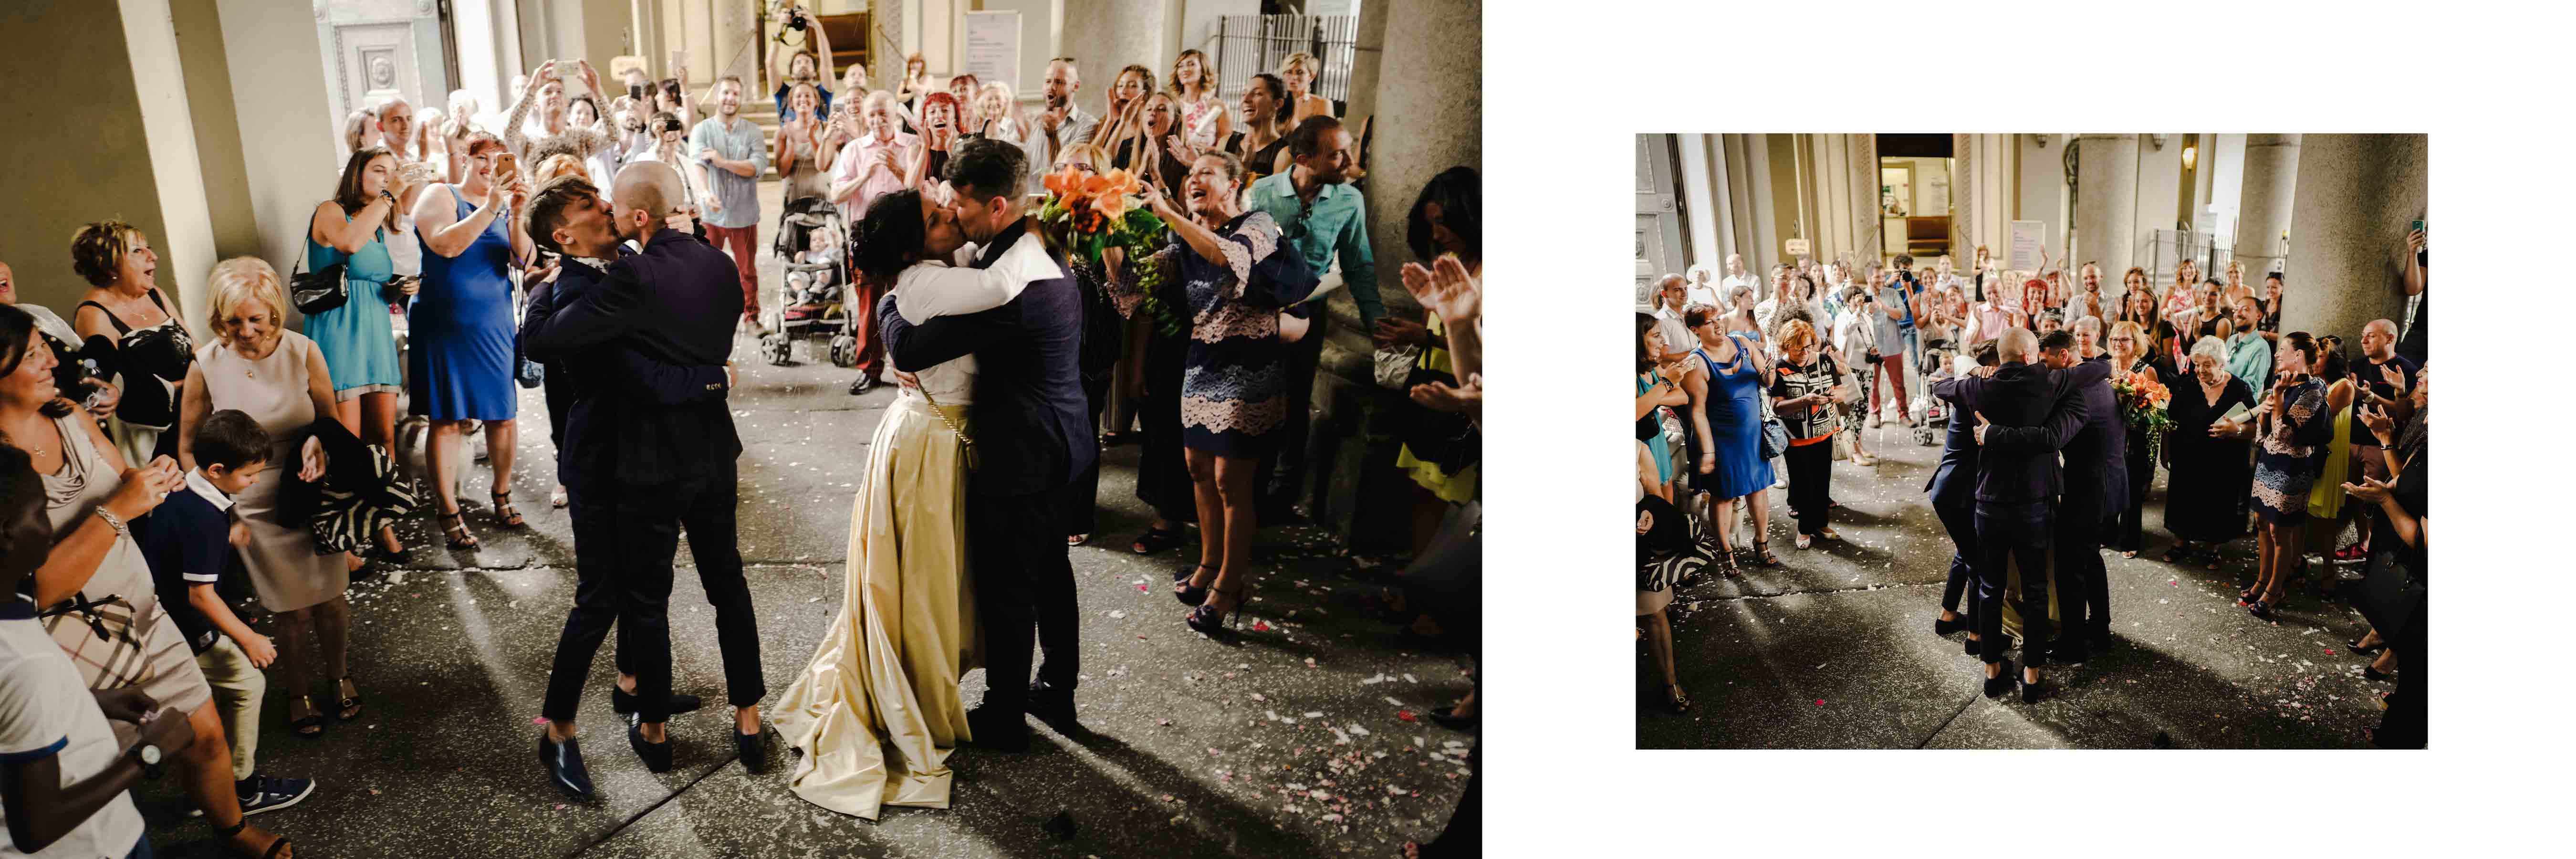 monicasica_fotografo matrimonio_torino_saluzzo_envets saluzzo_weddingday_weddingphotographer-9